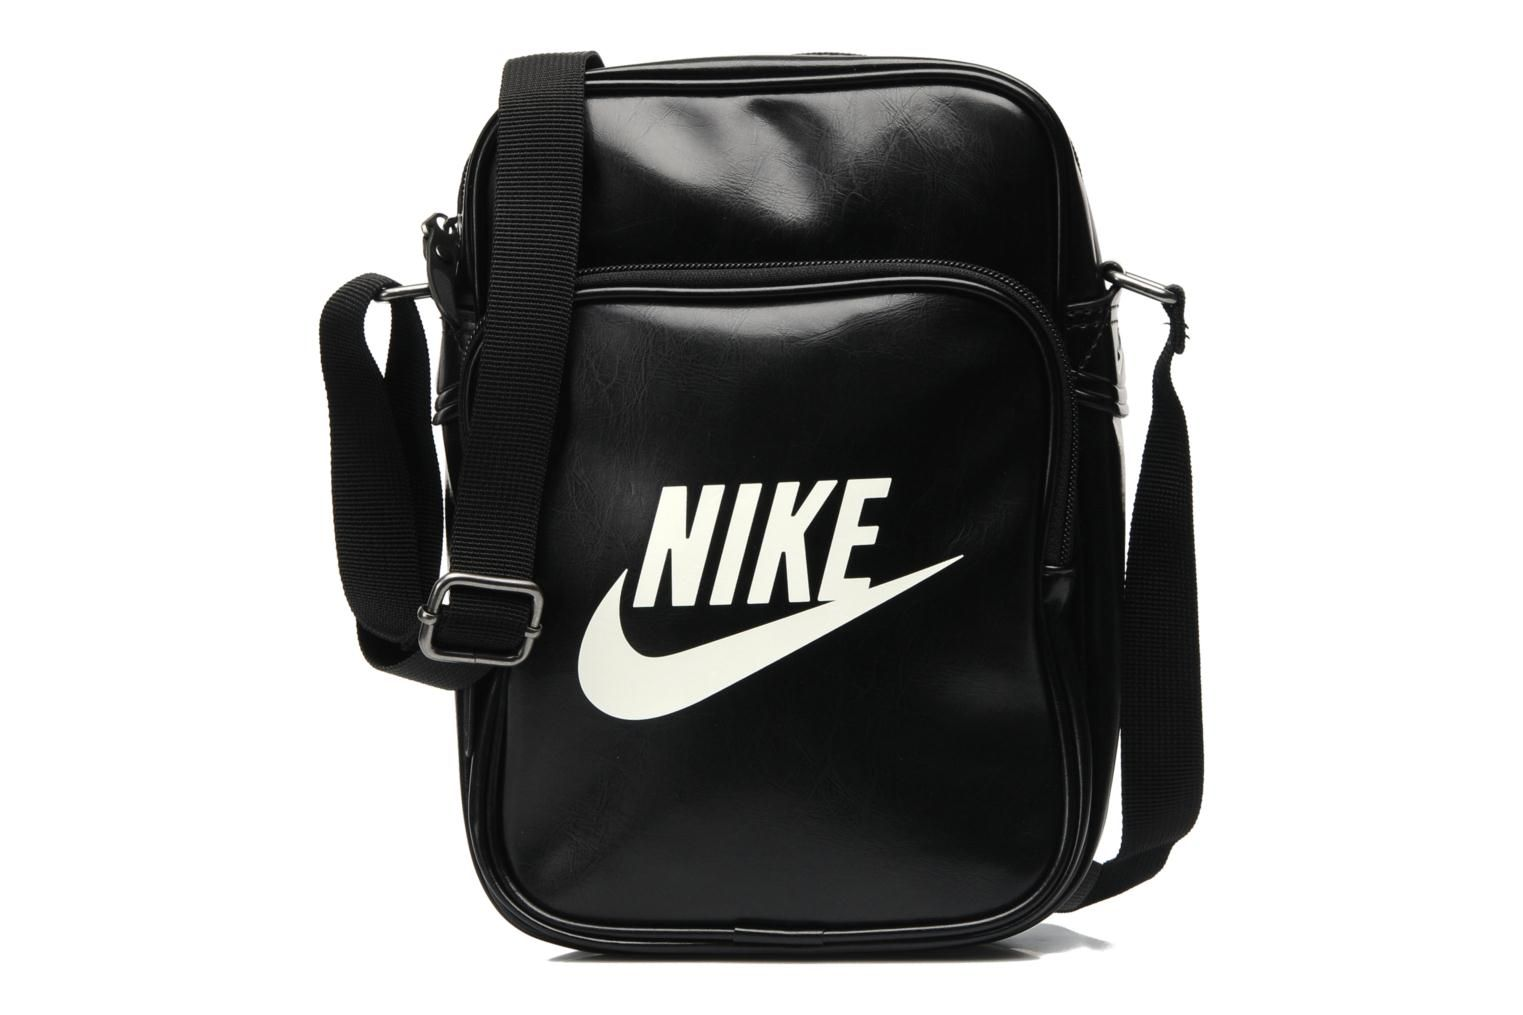 3a8a093831 Nike Heritage SI Small Item II Men's bags in Black at Sarenza.co.uk (137174)